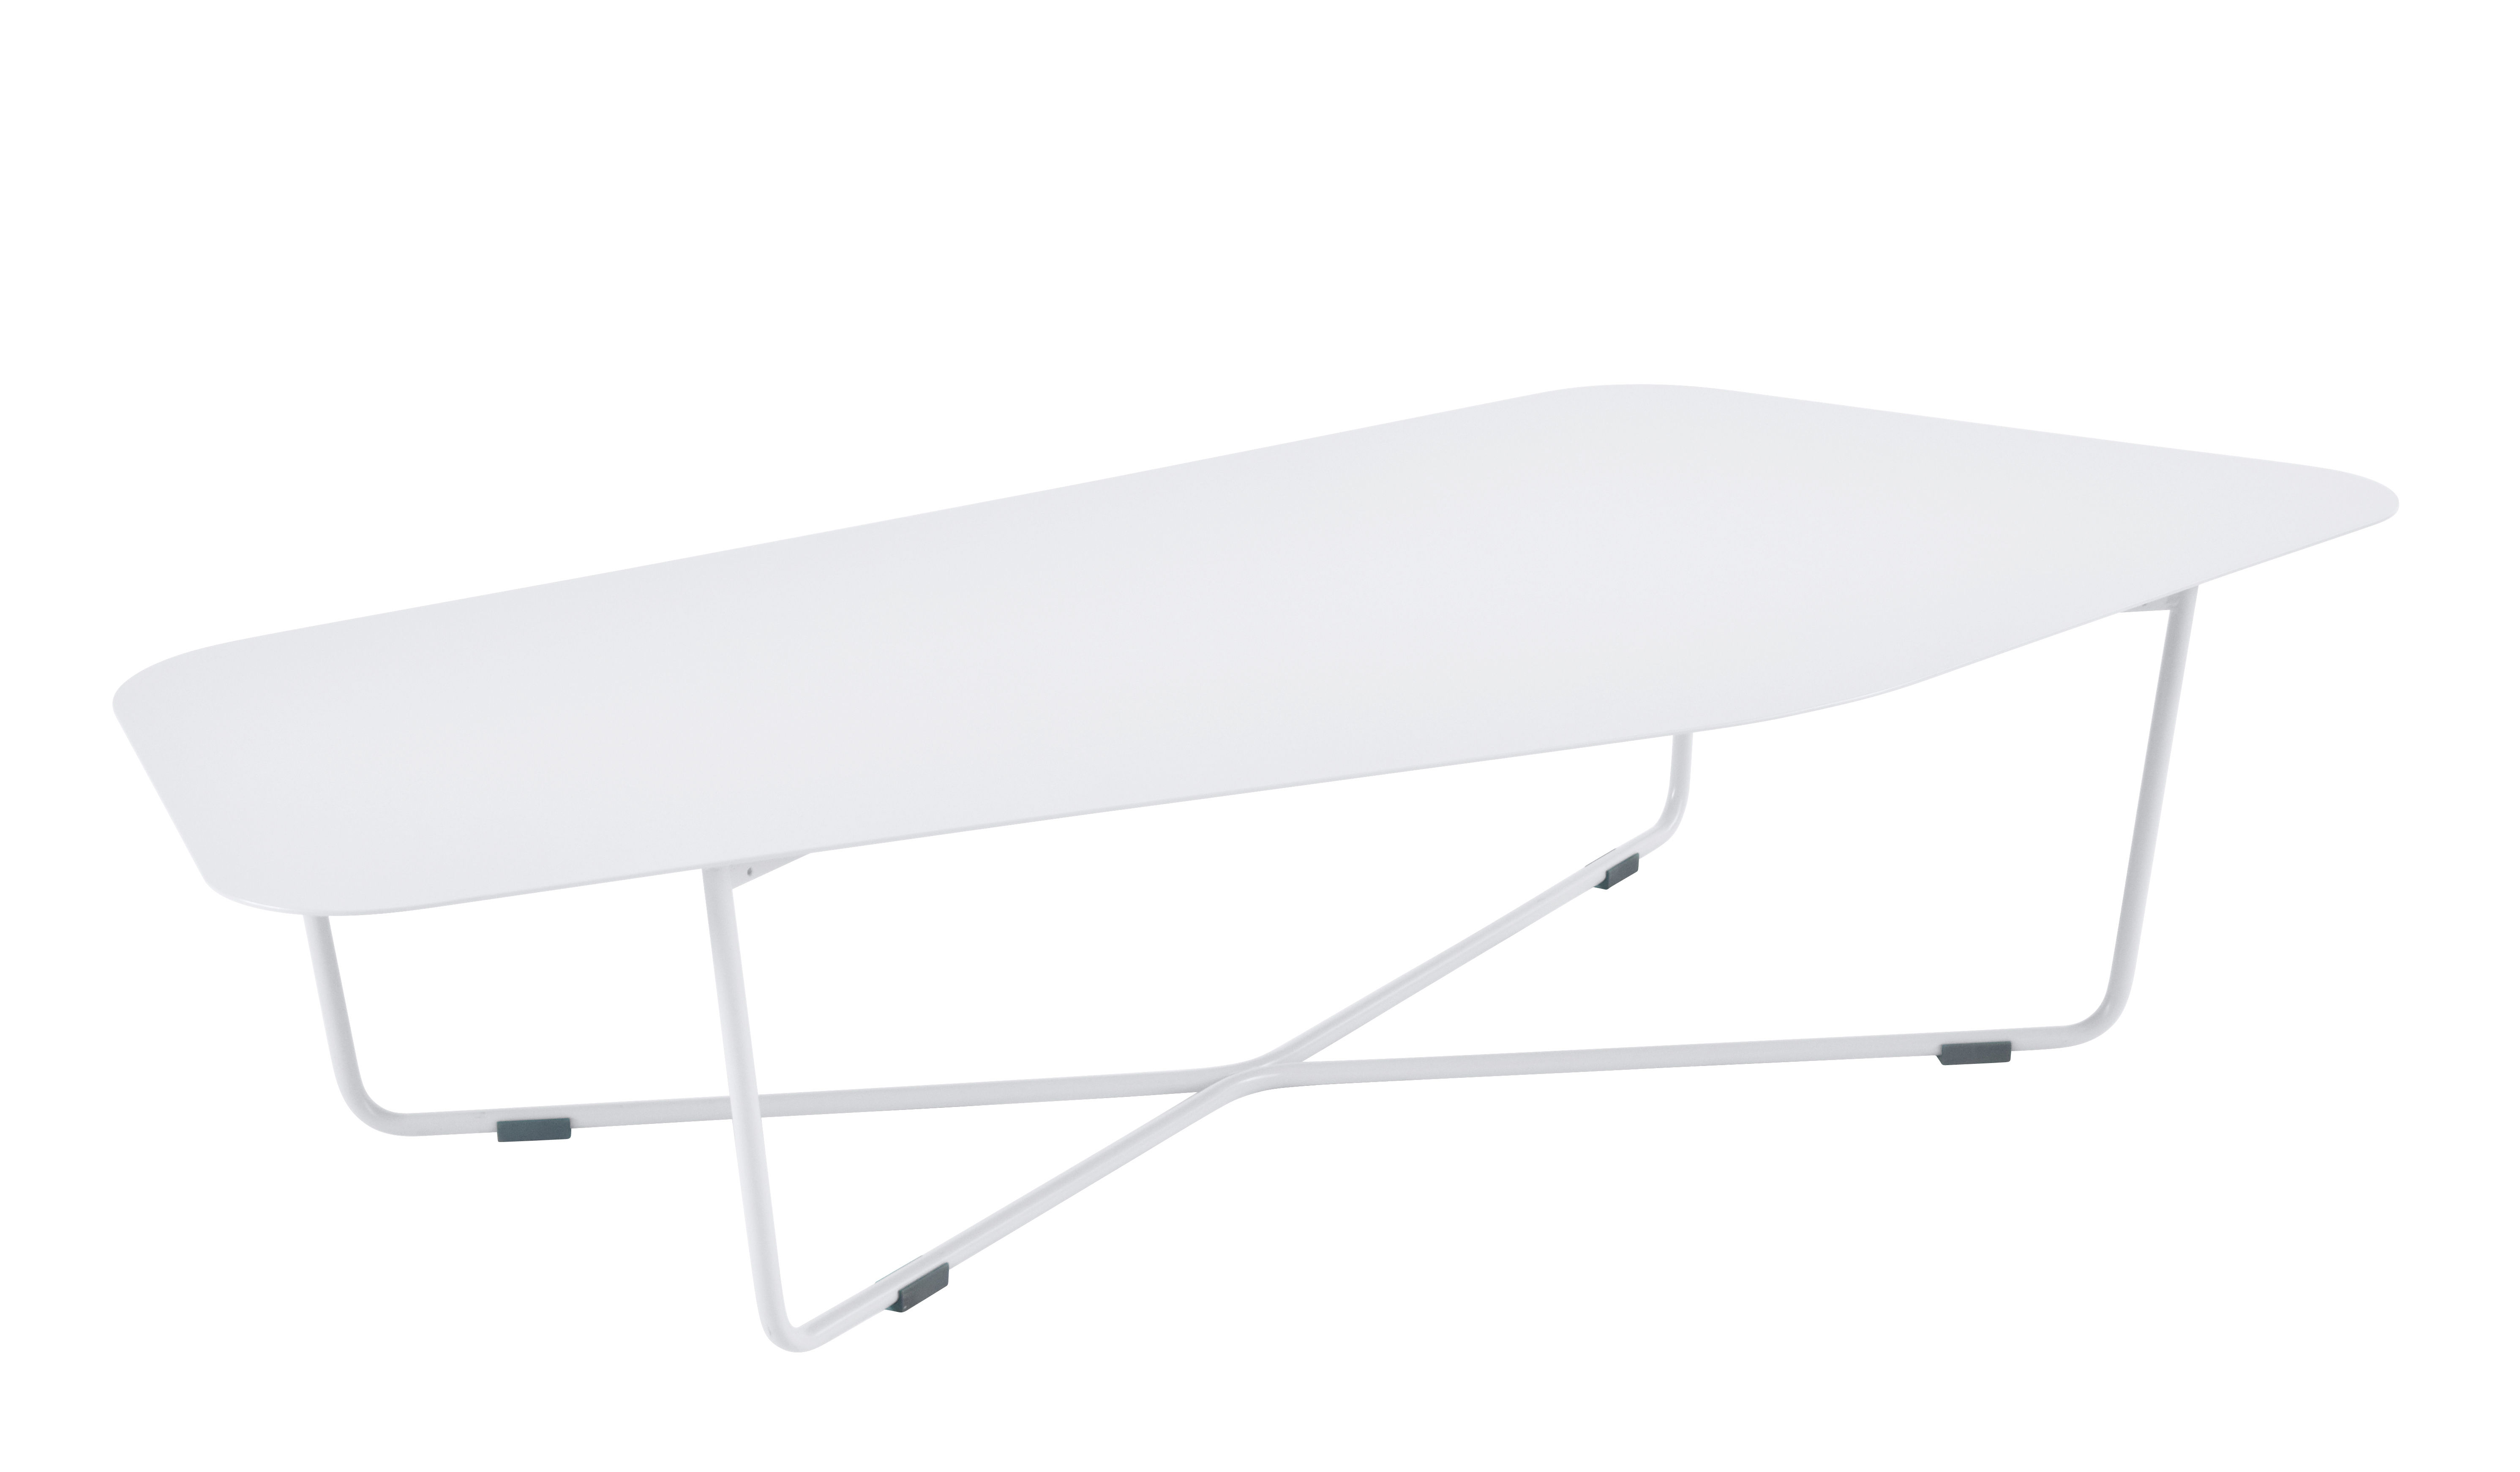 Ultrasofa Couchtisch Metall 162 X 74 Cm Weiss By Fermob Made